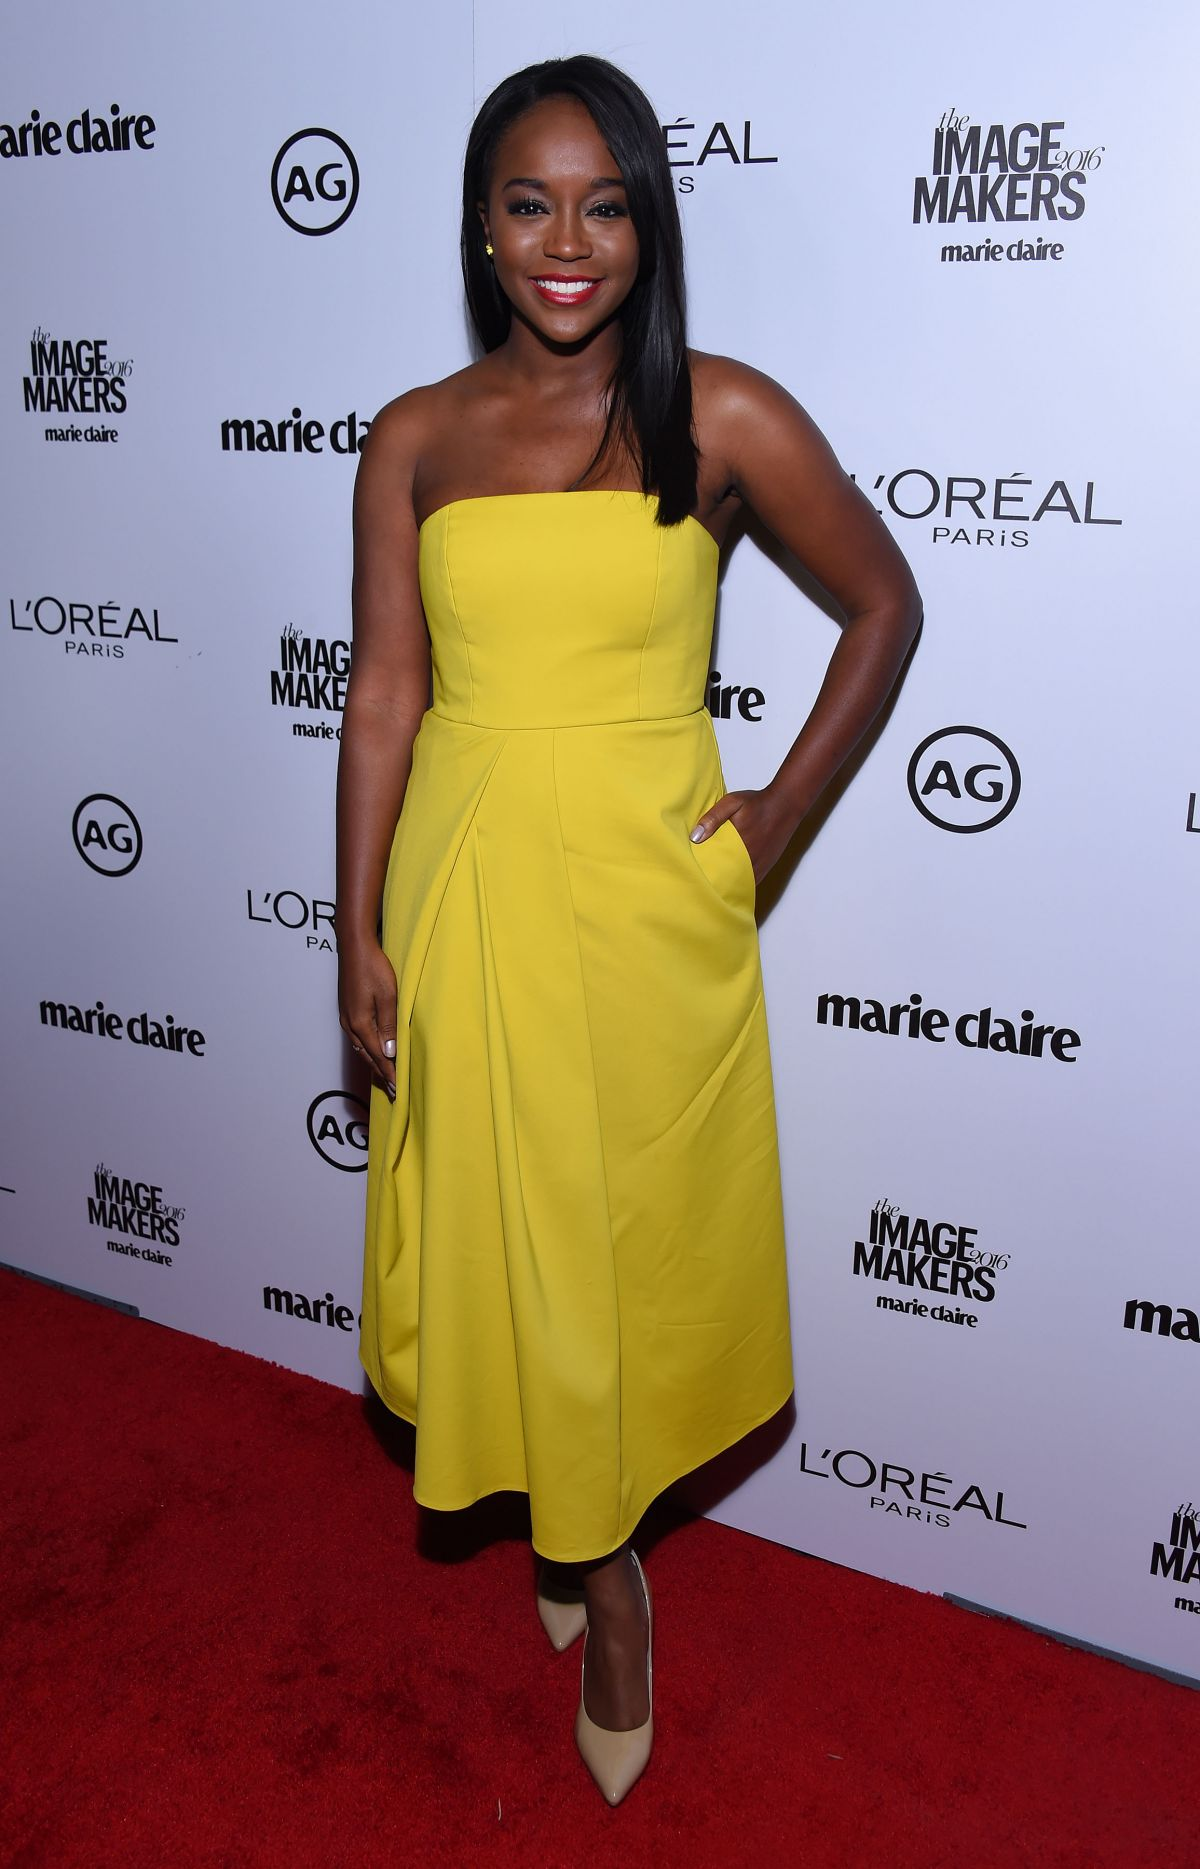 aja-naomi-king-at-2016-marie-claire-s-image-makers-awards-in-los-angeles-01-12-2016_1